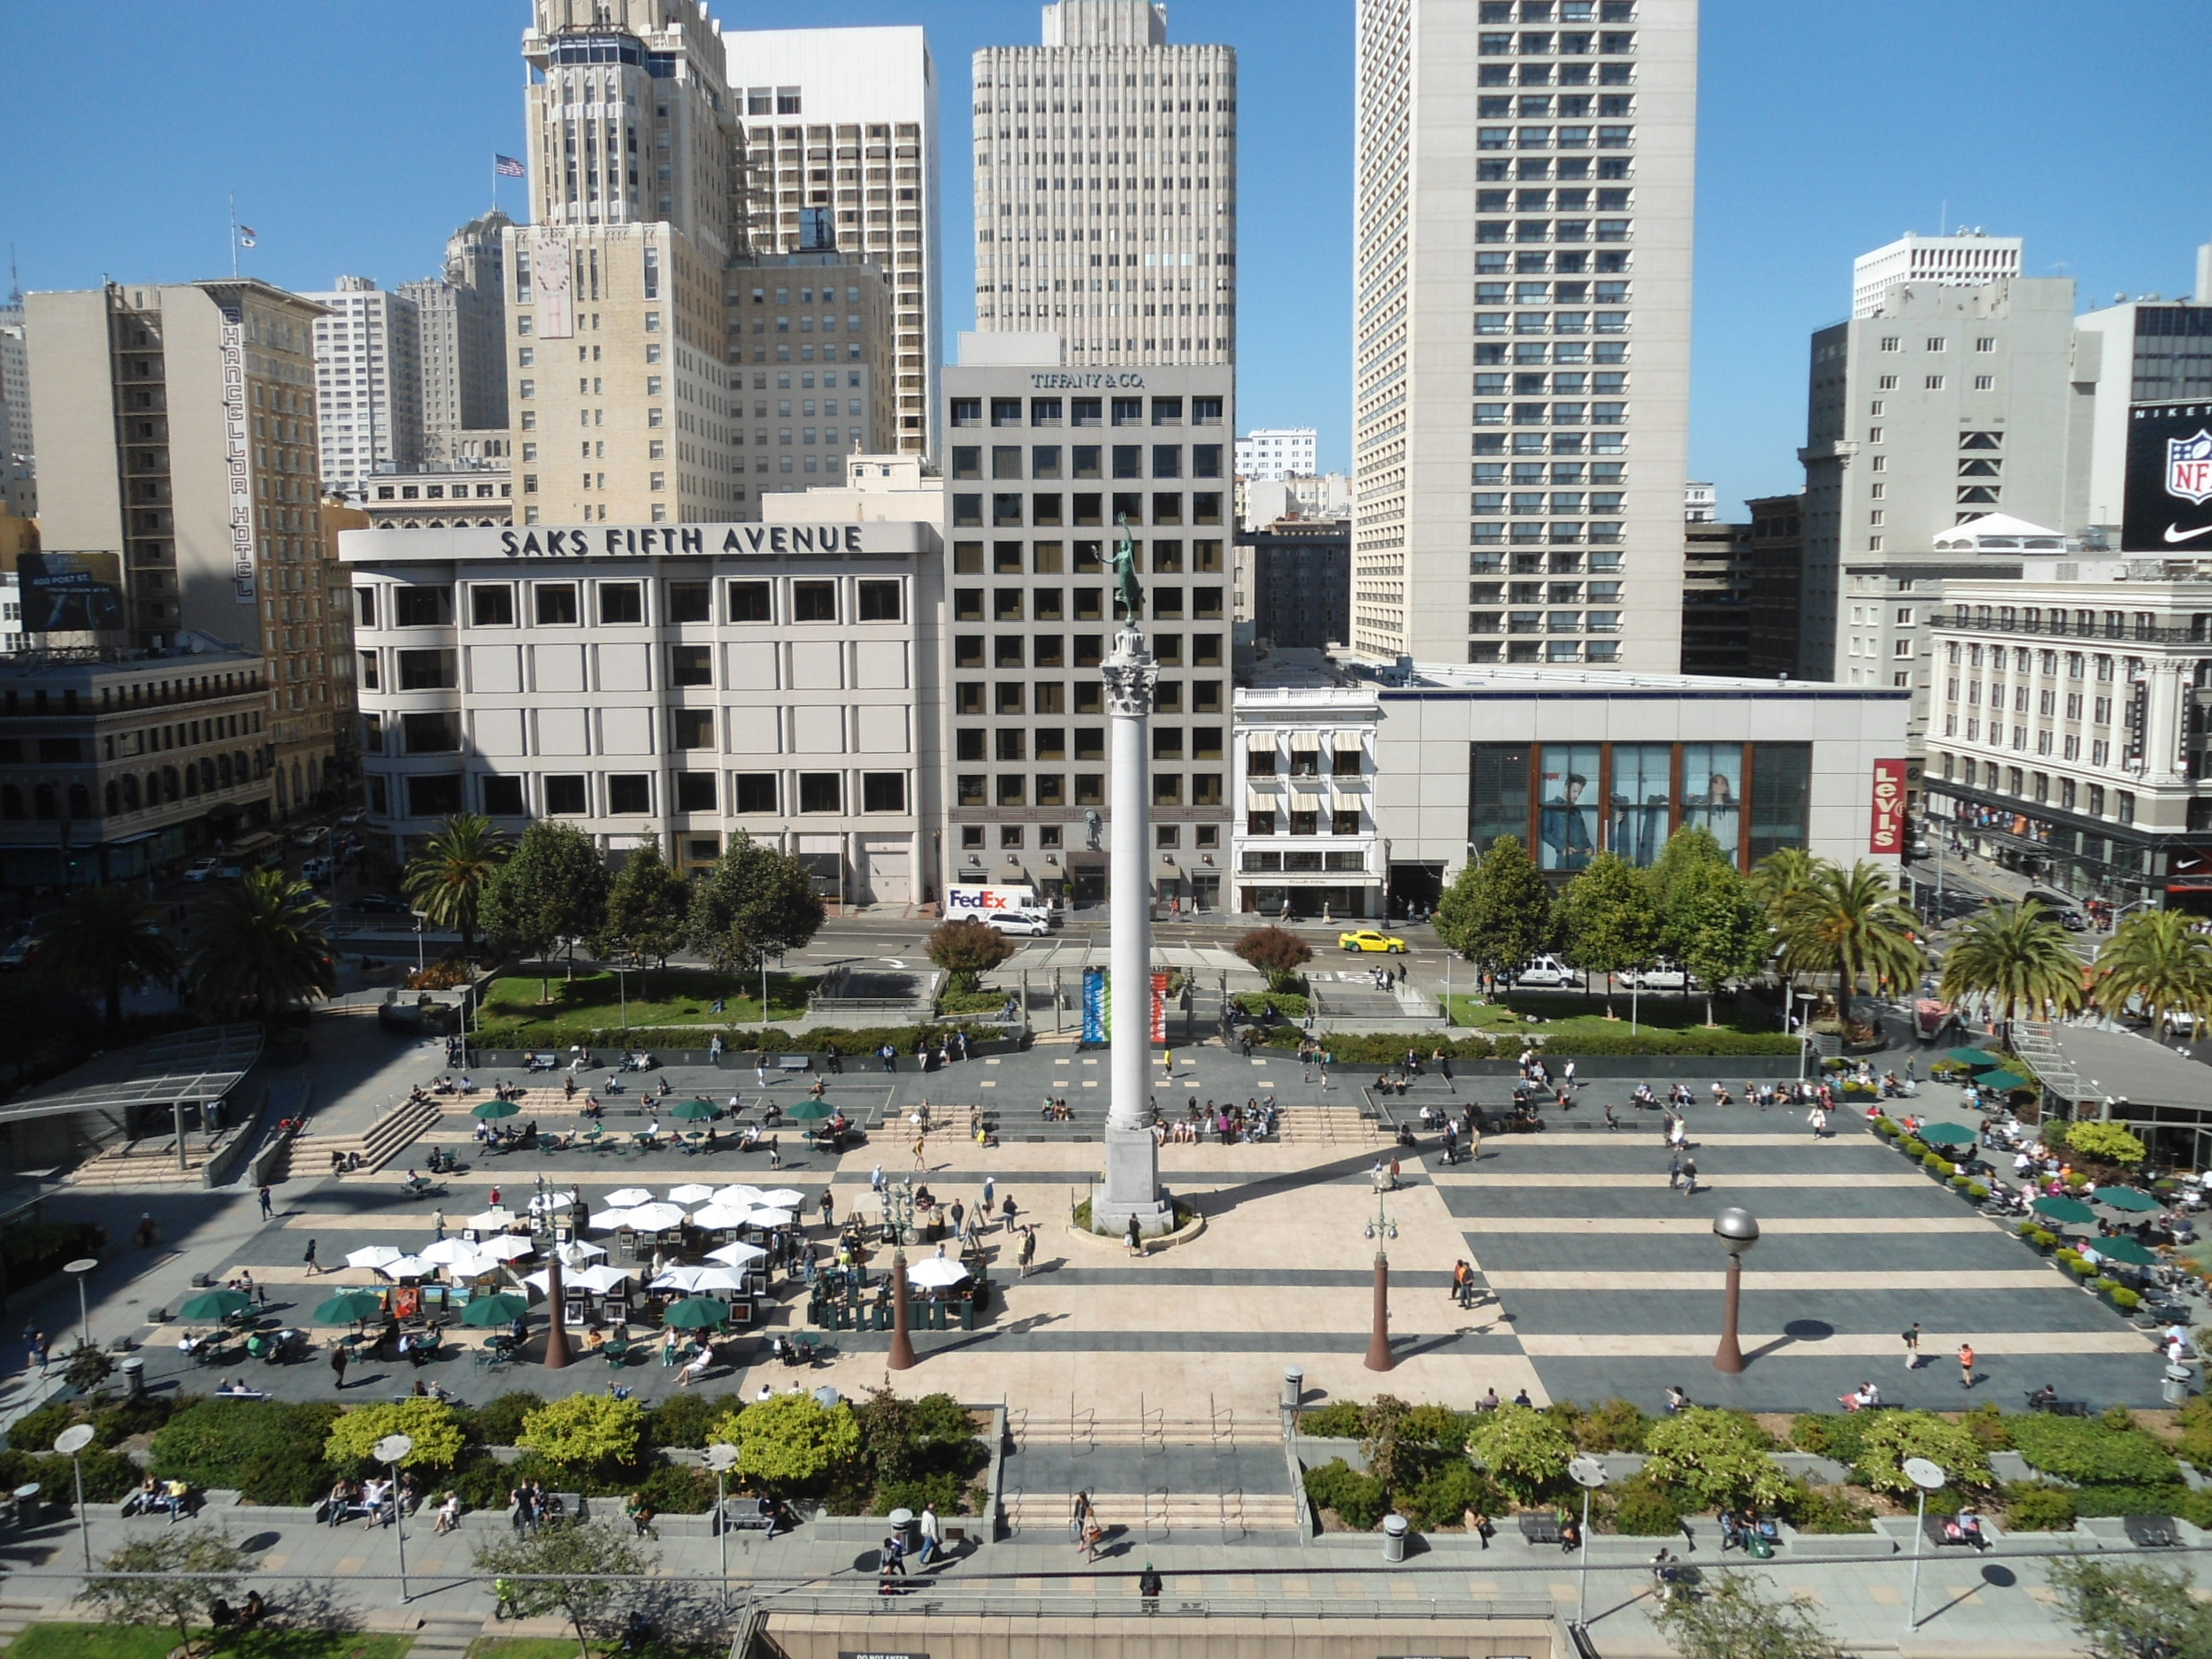 A great gathering place in the heart of the downtown area, nearby Union Square is a 2.6-acre public plaza bordered by Geary, Powell, Post and Stockton Streets.